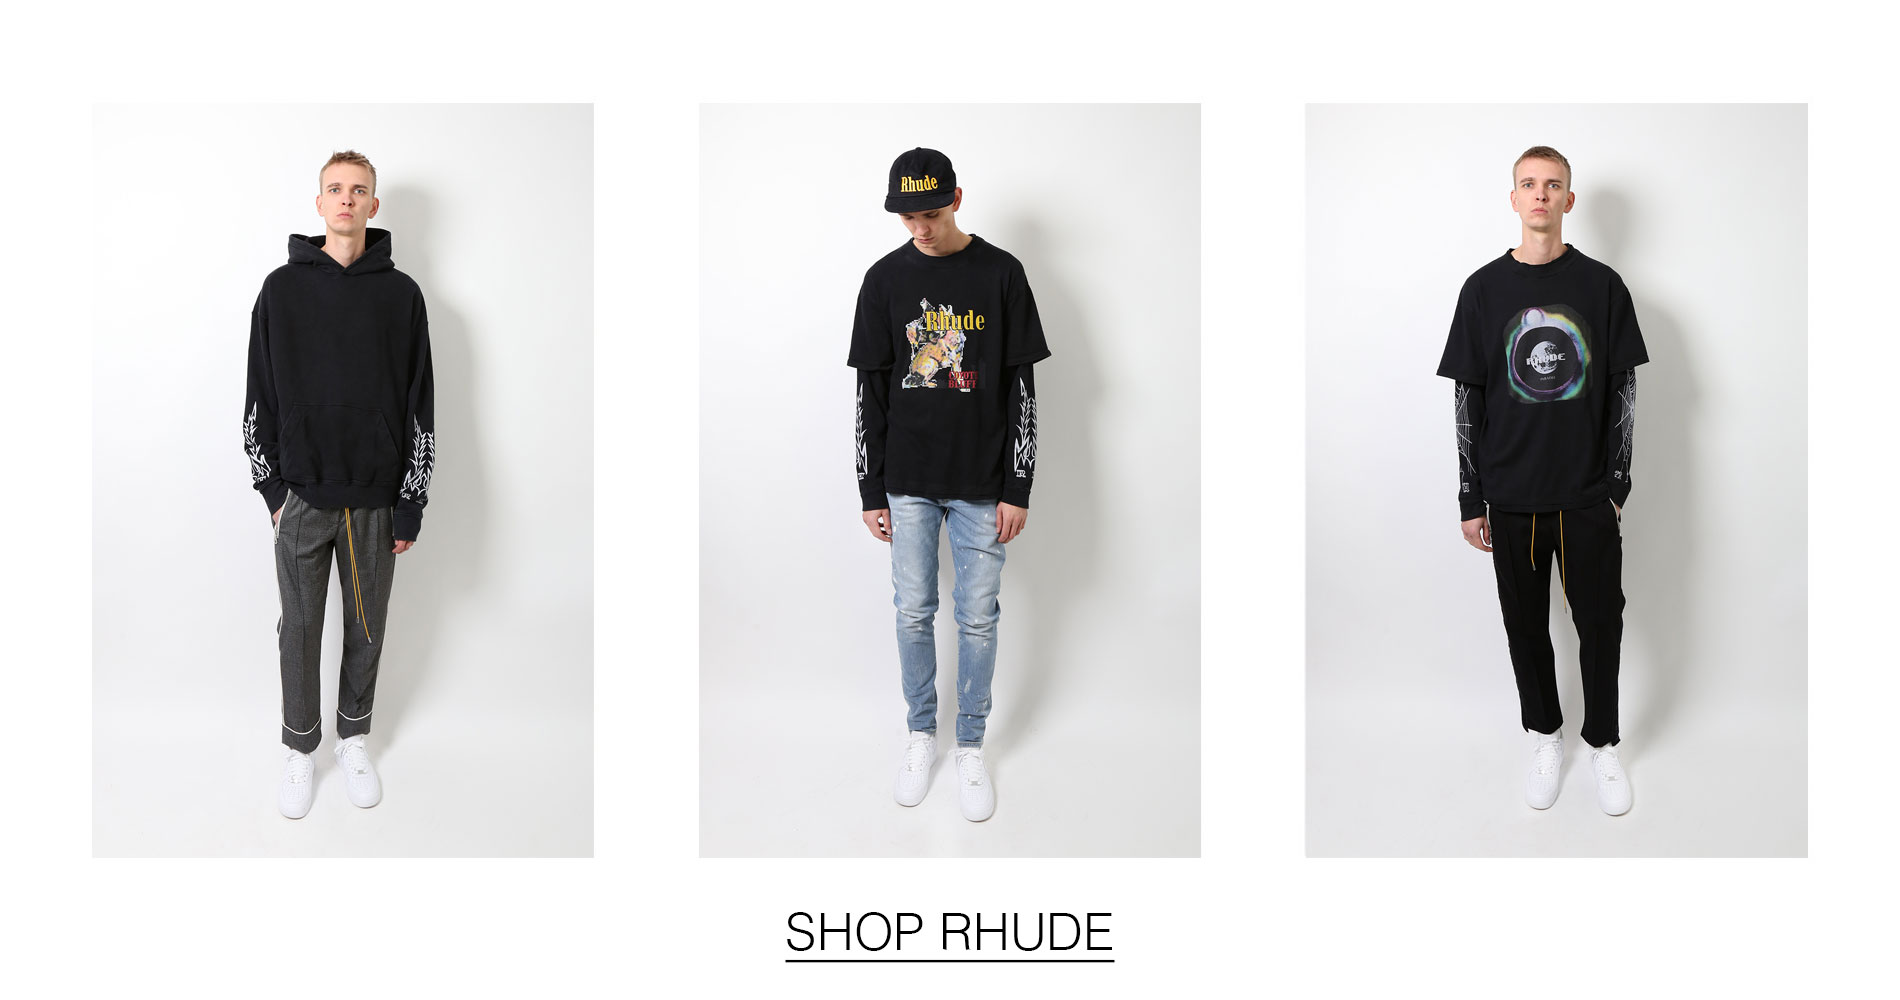 https://shatle.com/sk/products/brand/21/rhude